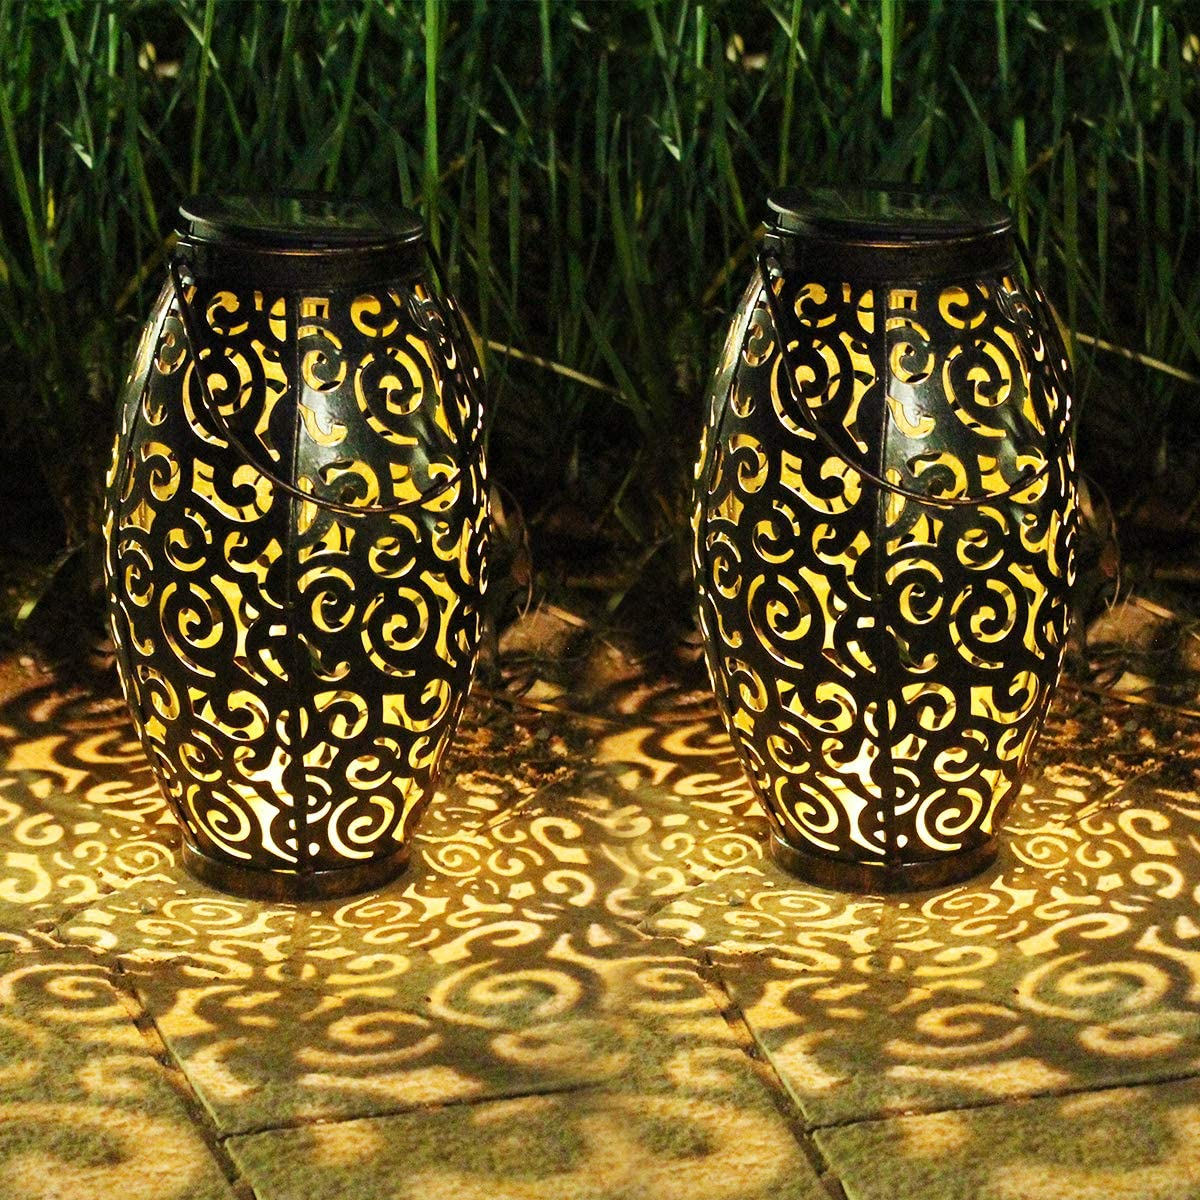 Solar Lanterns Outdoor Hanging,2 Pack Solar Moroccan Lantern Garden Outdoor Solar Lights with Handle Retro Metal Waterproof for Patio,Yard,Pathway Decorations (White-Tree Hollow)